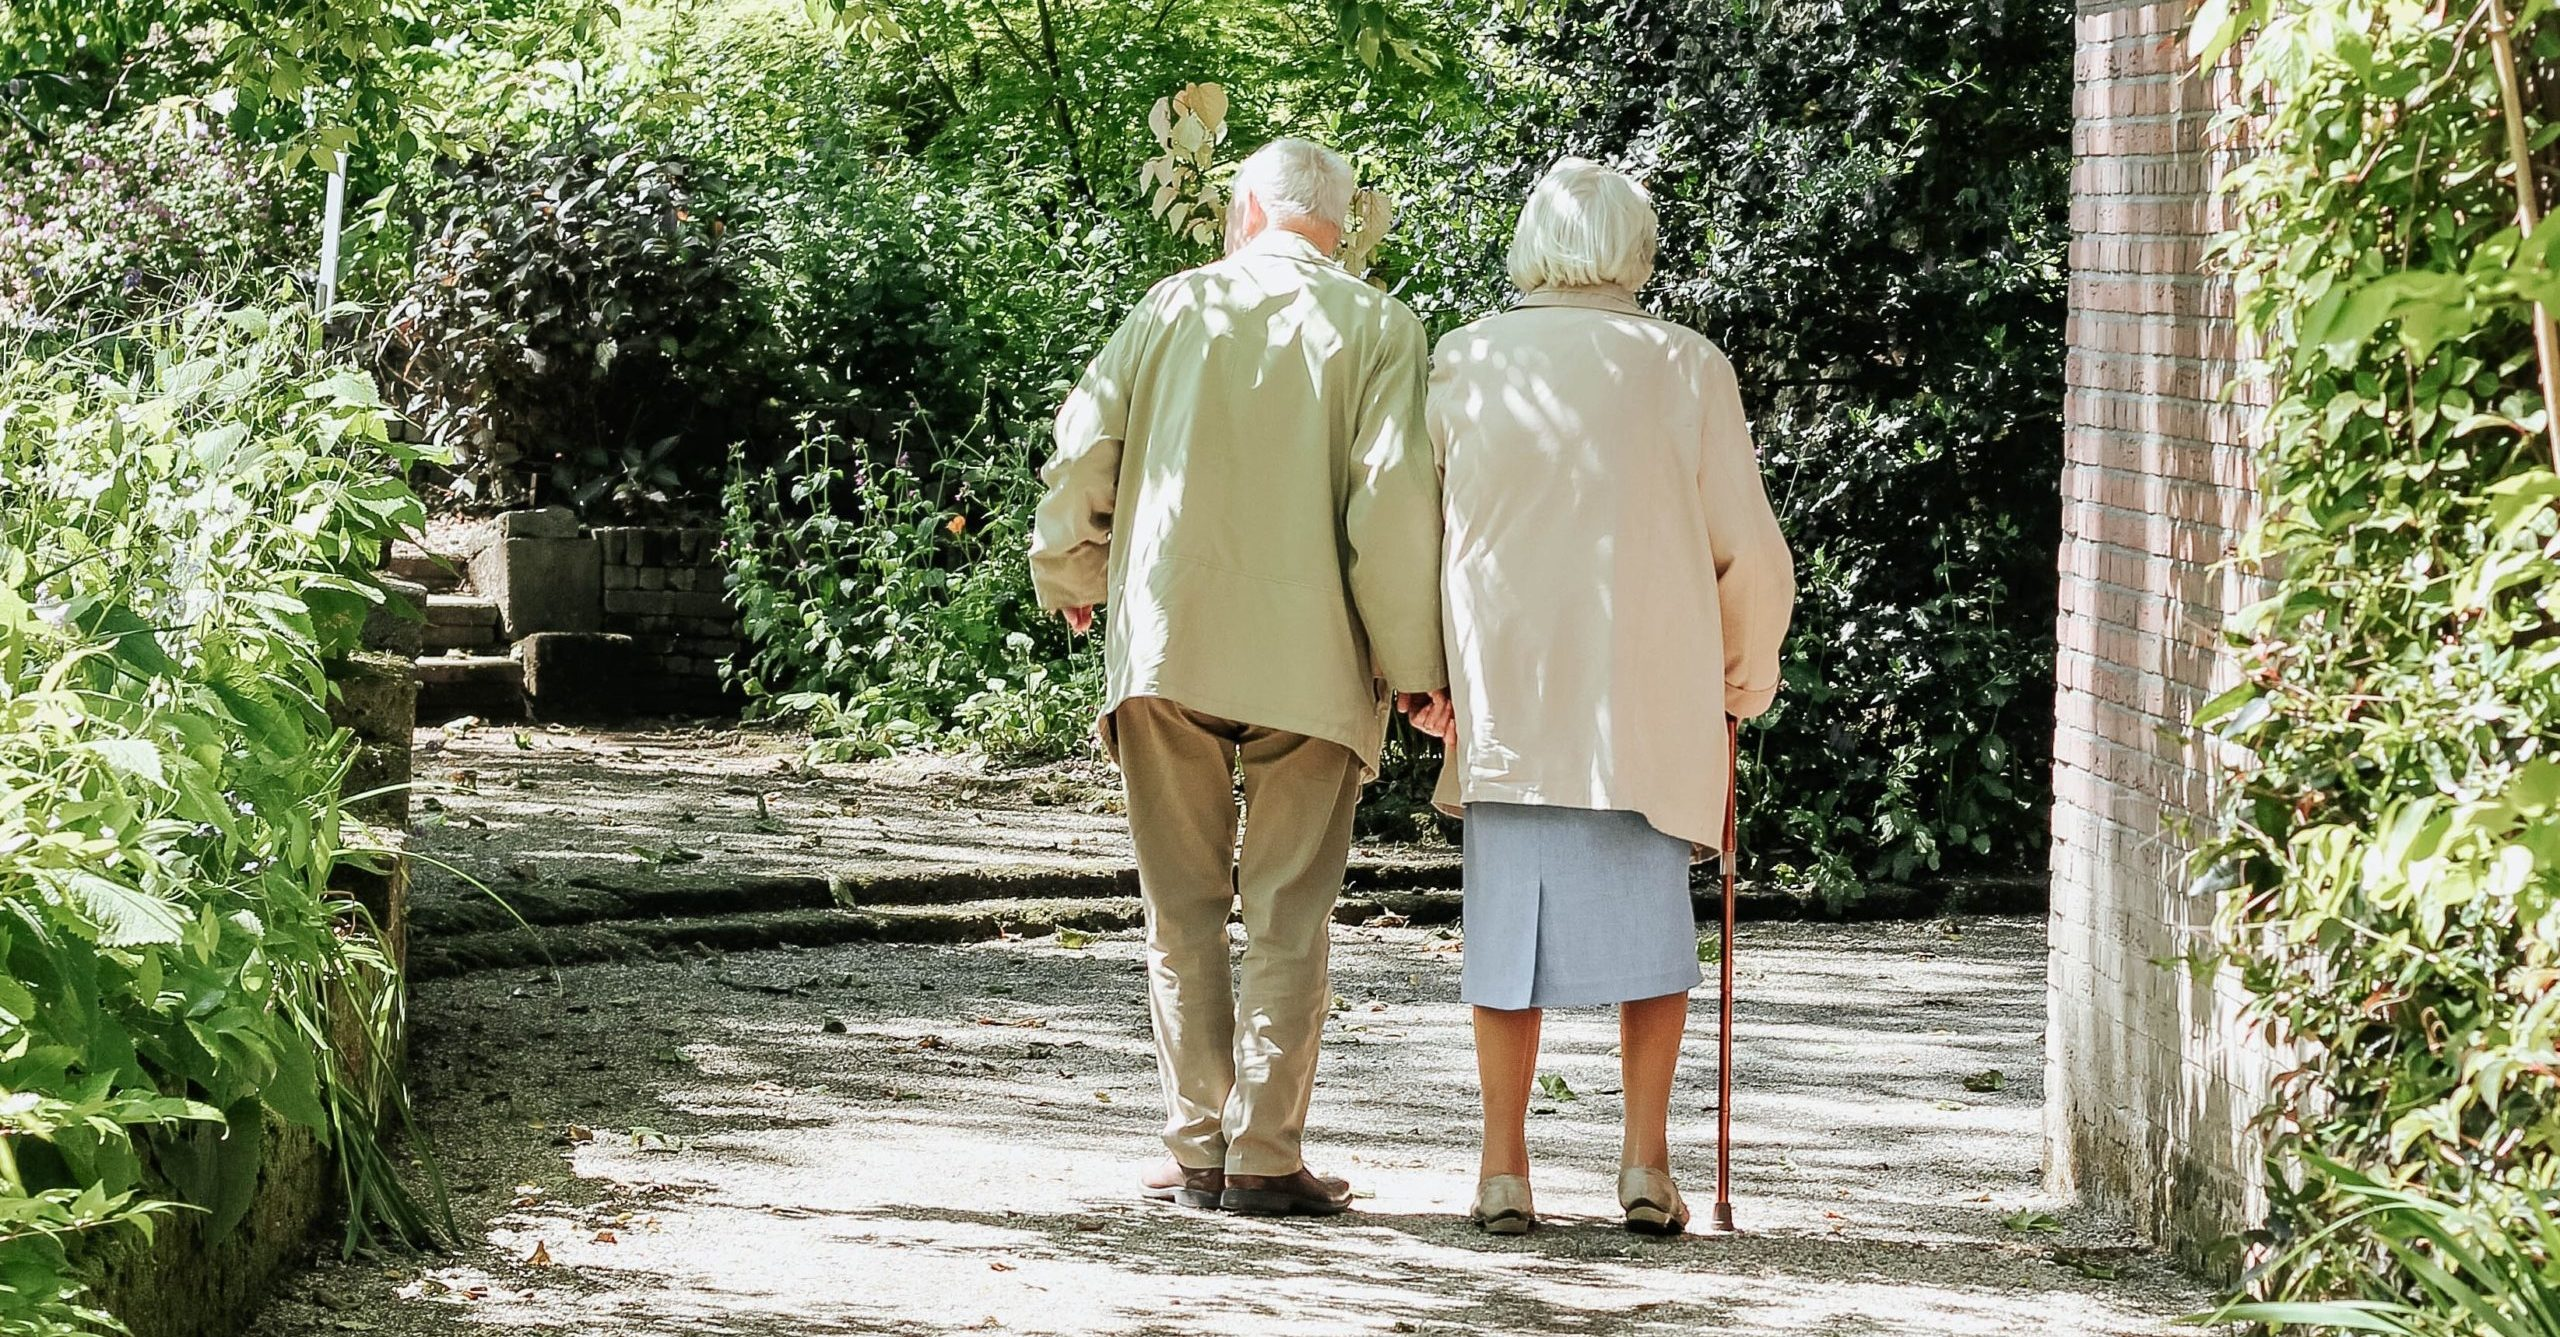 Vulnerable and elderly Brits can finally go outside today after shielding for 10 weeks